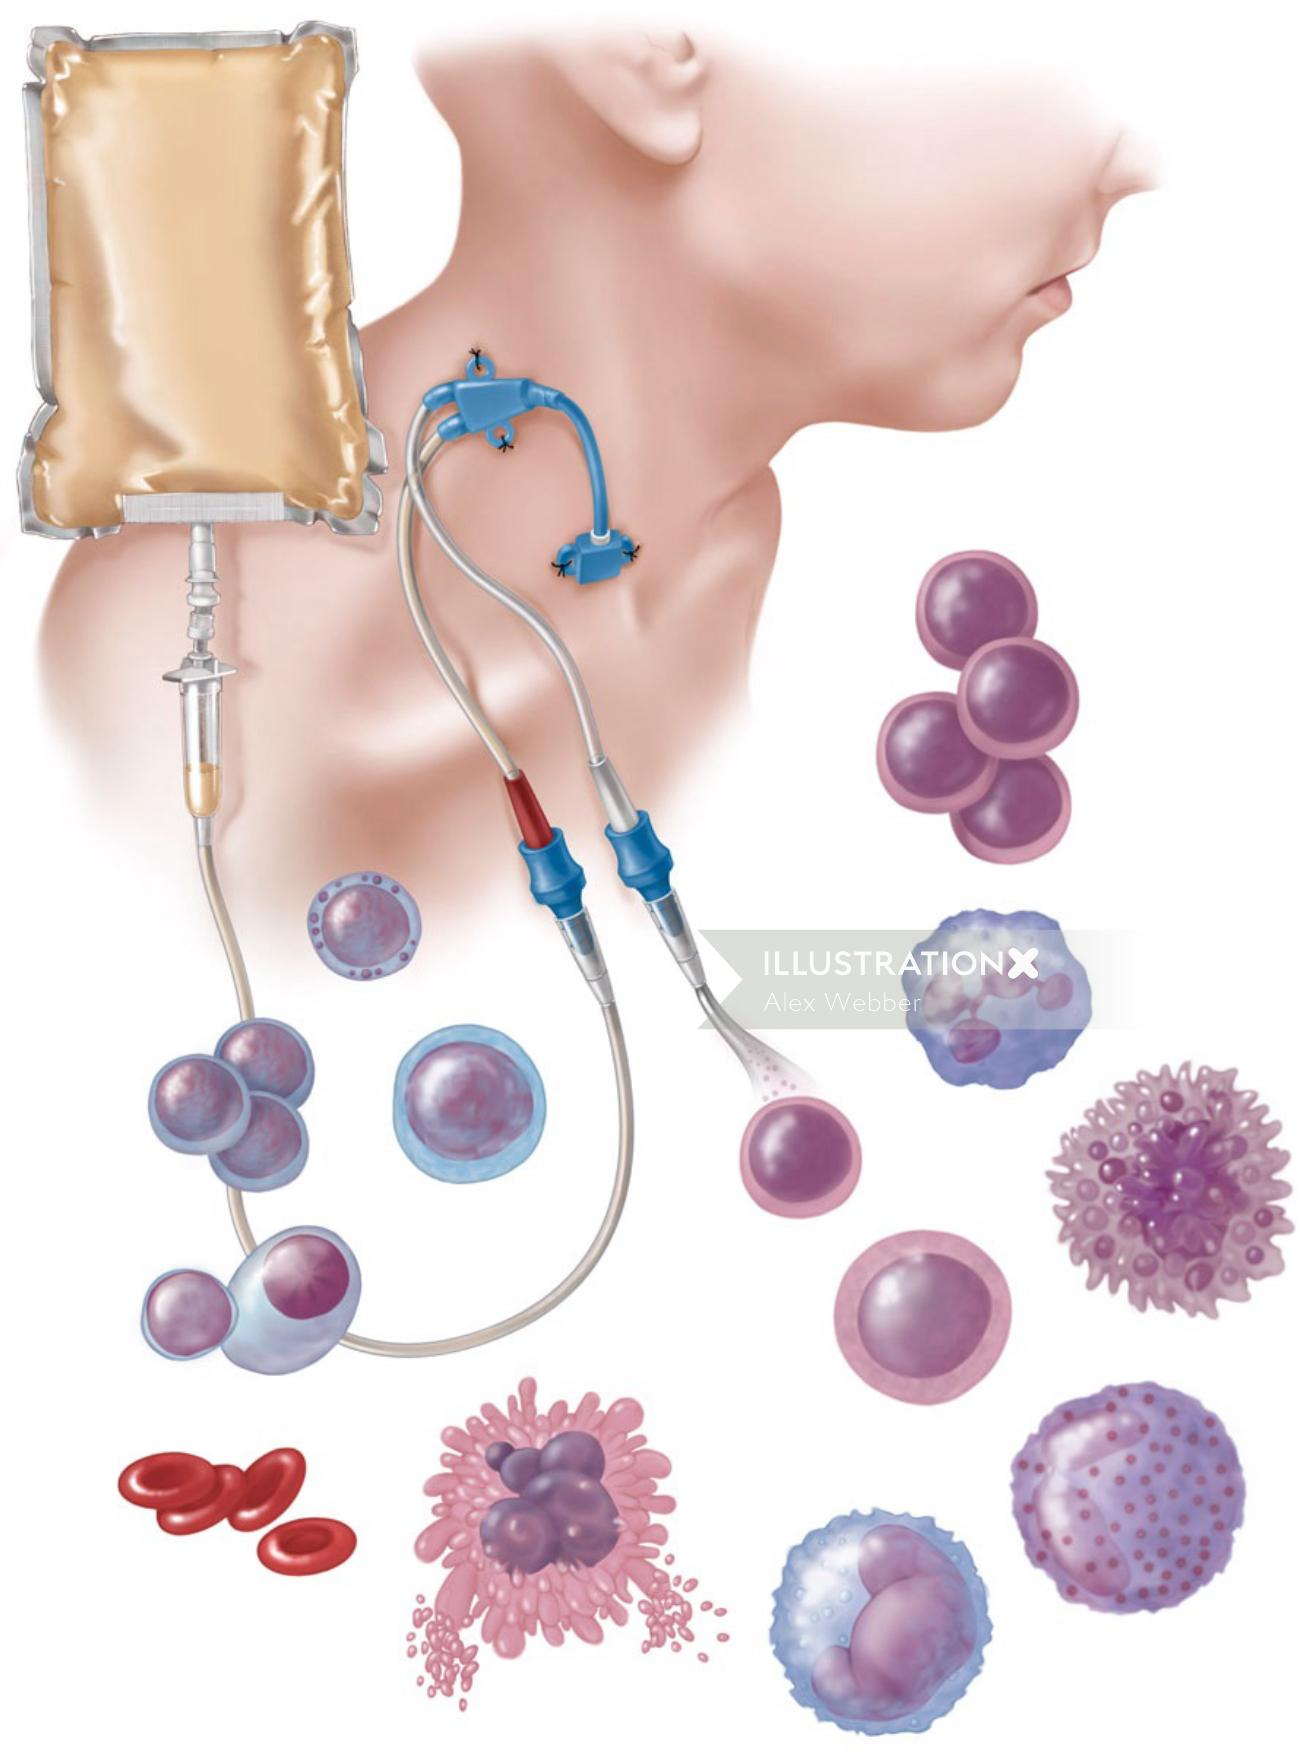 Hematopoietic stem cell transplant illustration by AlexBaker